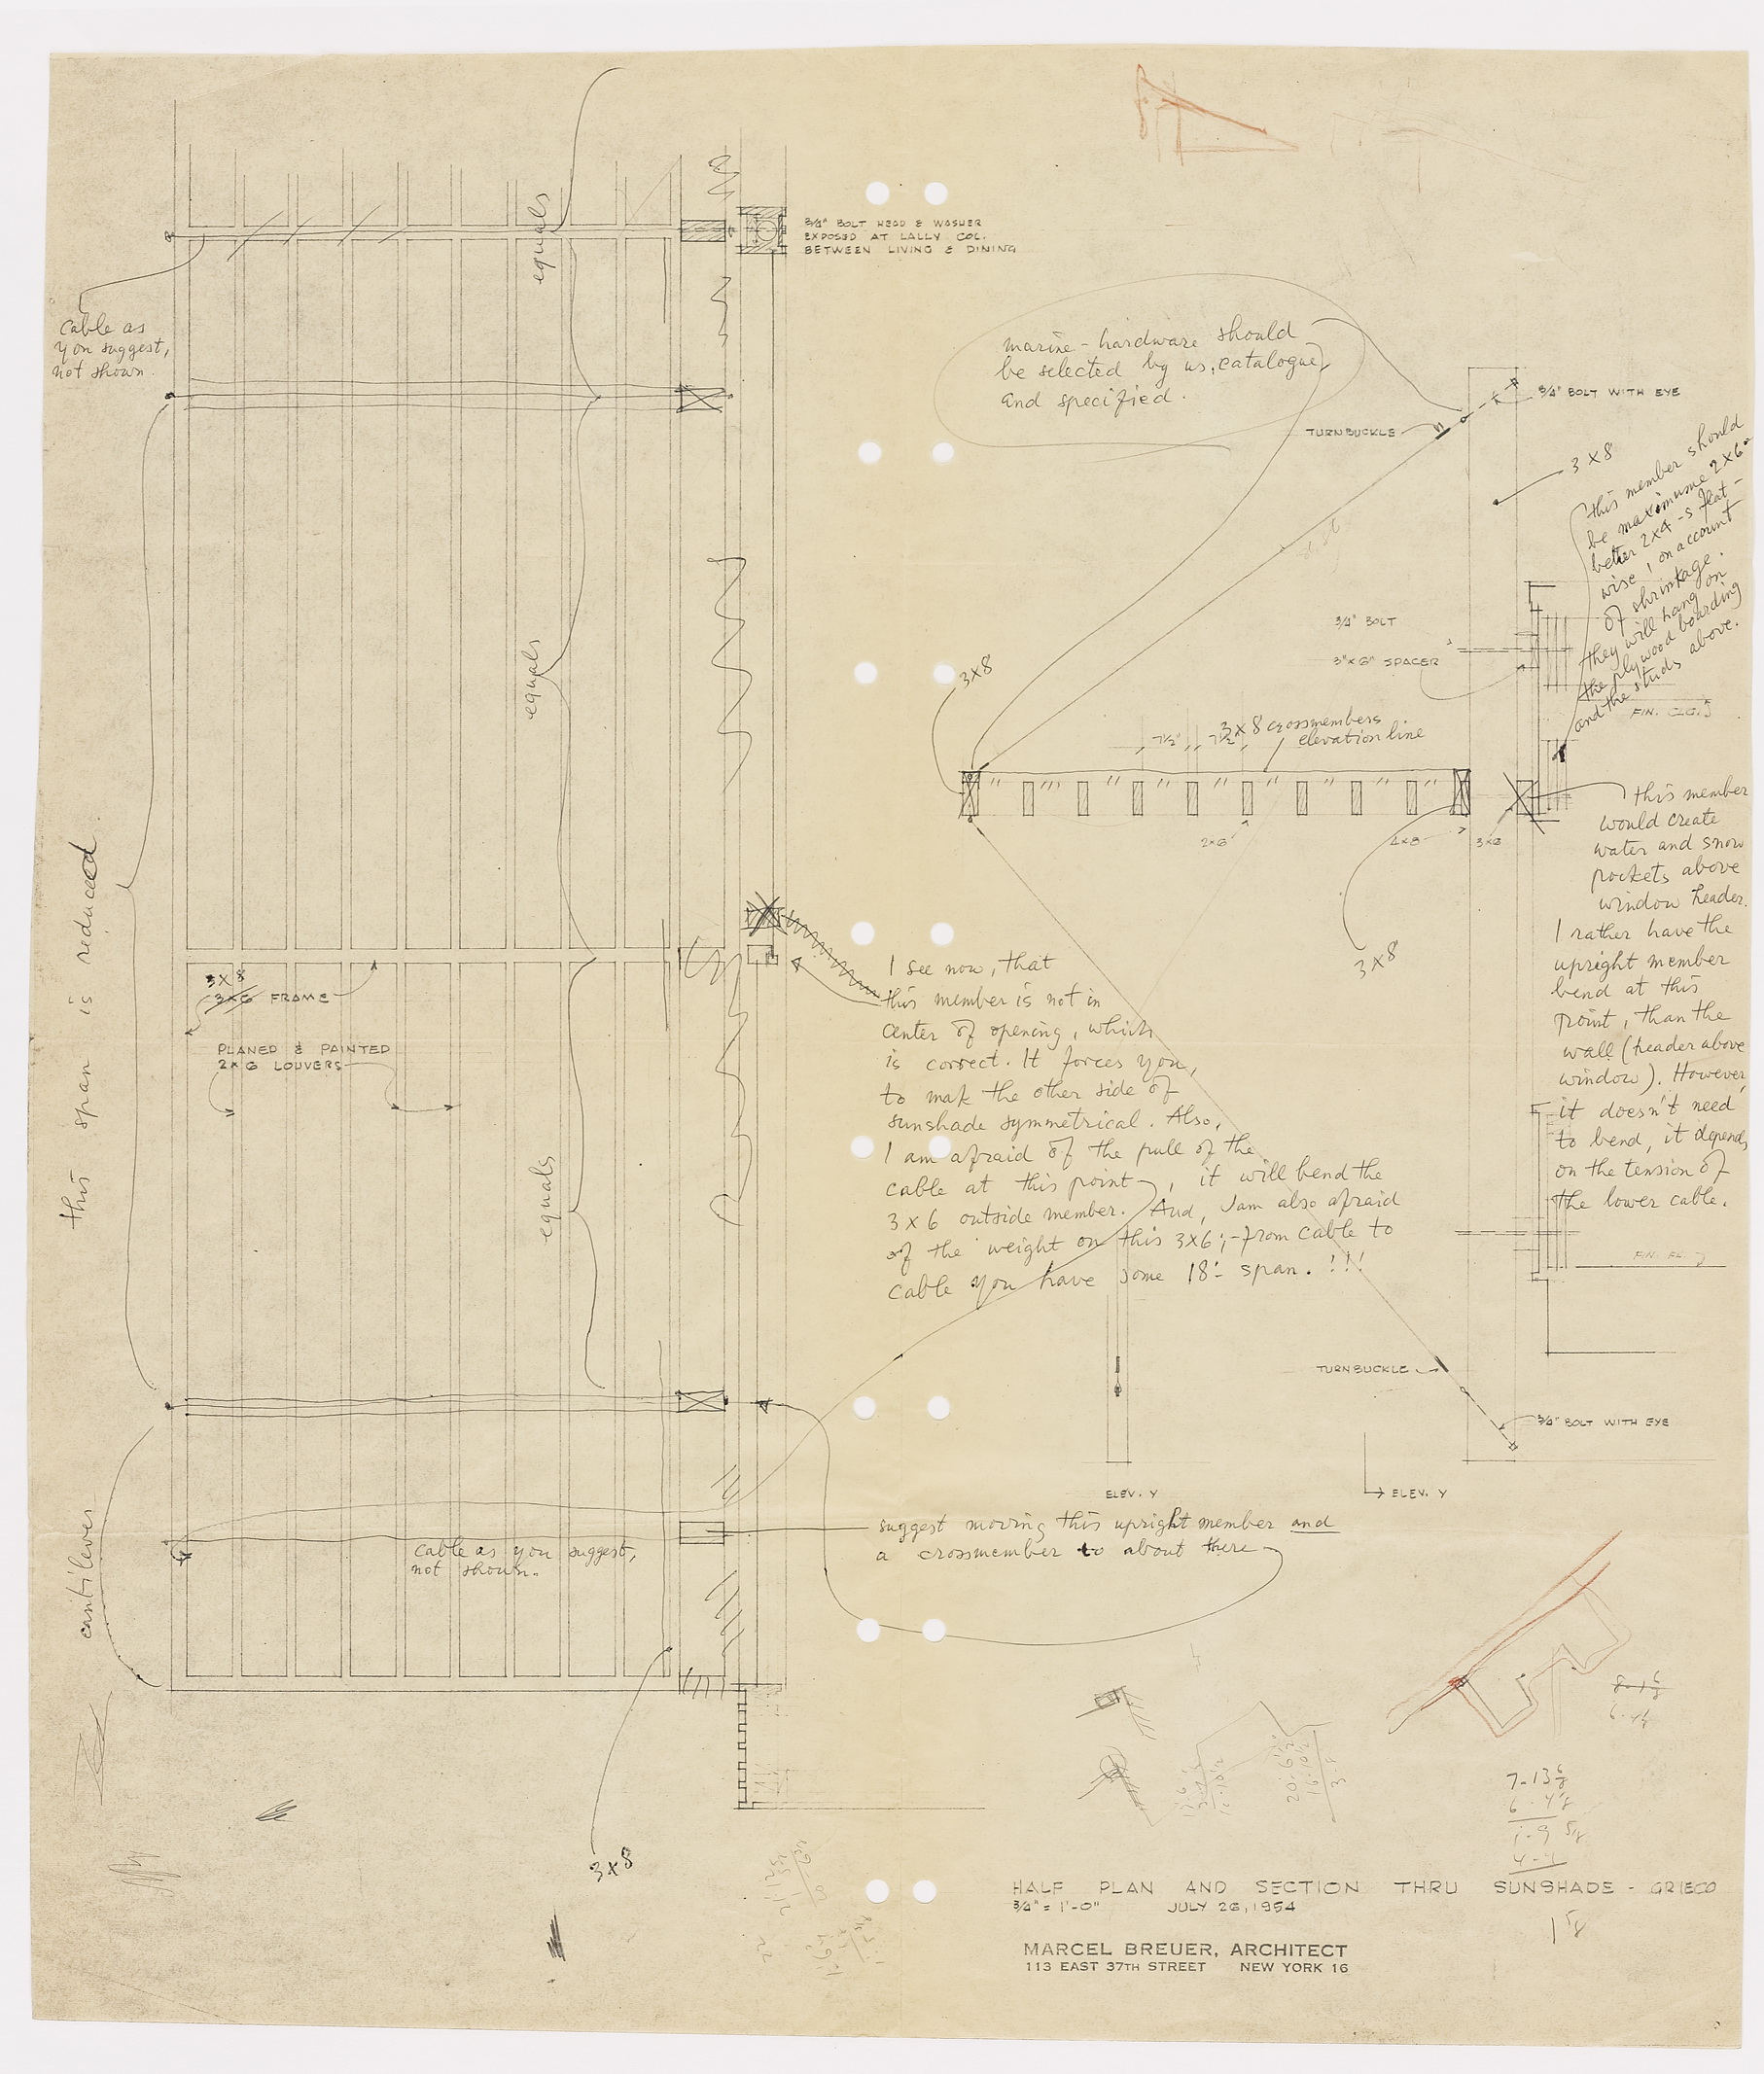 Click to select: Half Plan and Section through Sunshade (annotated print)